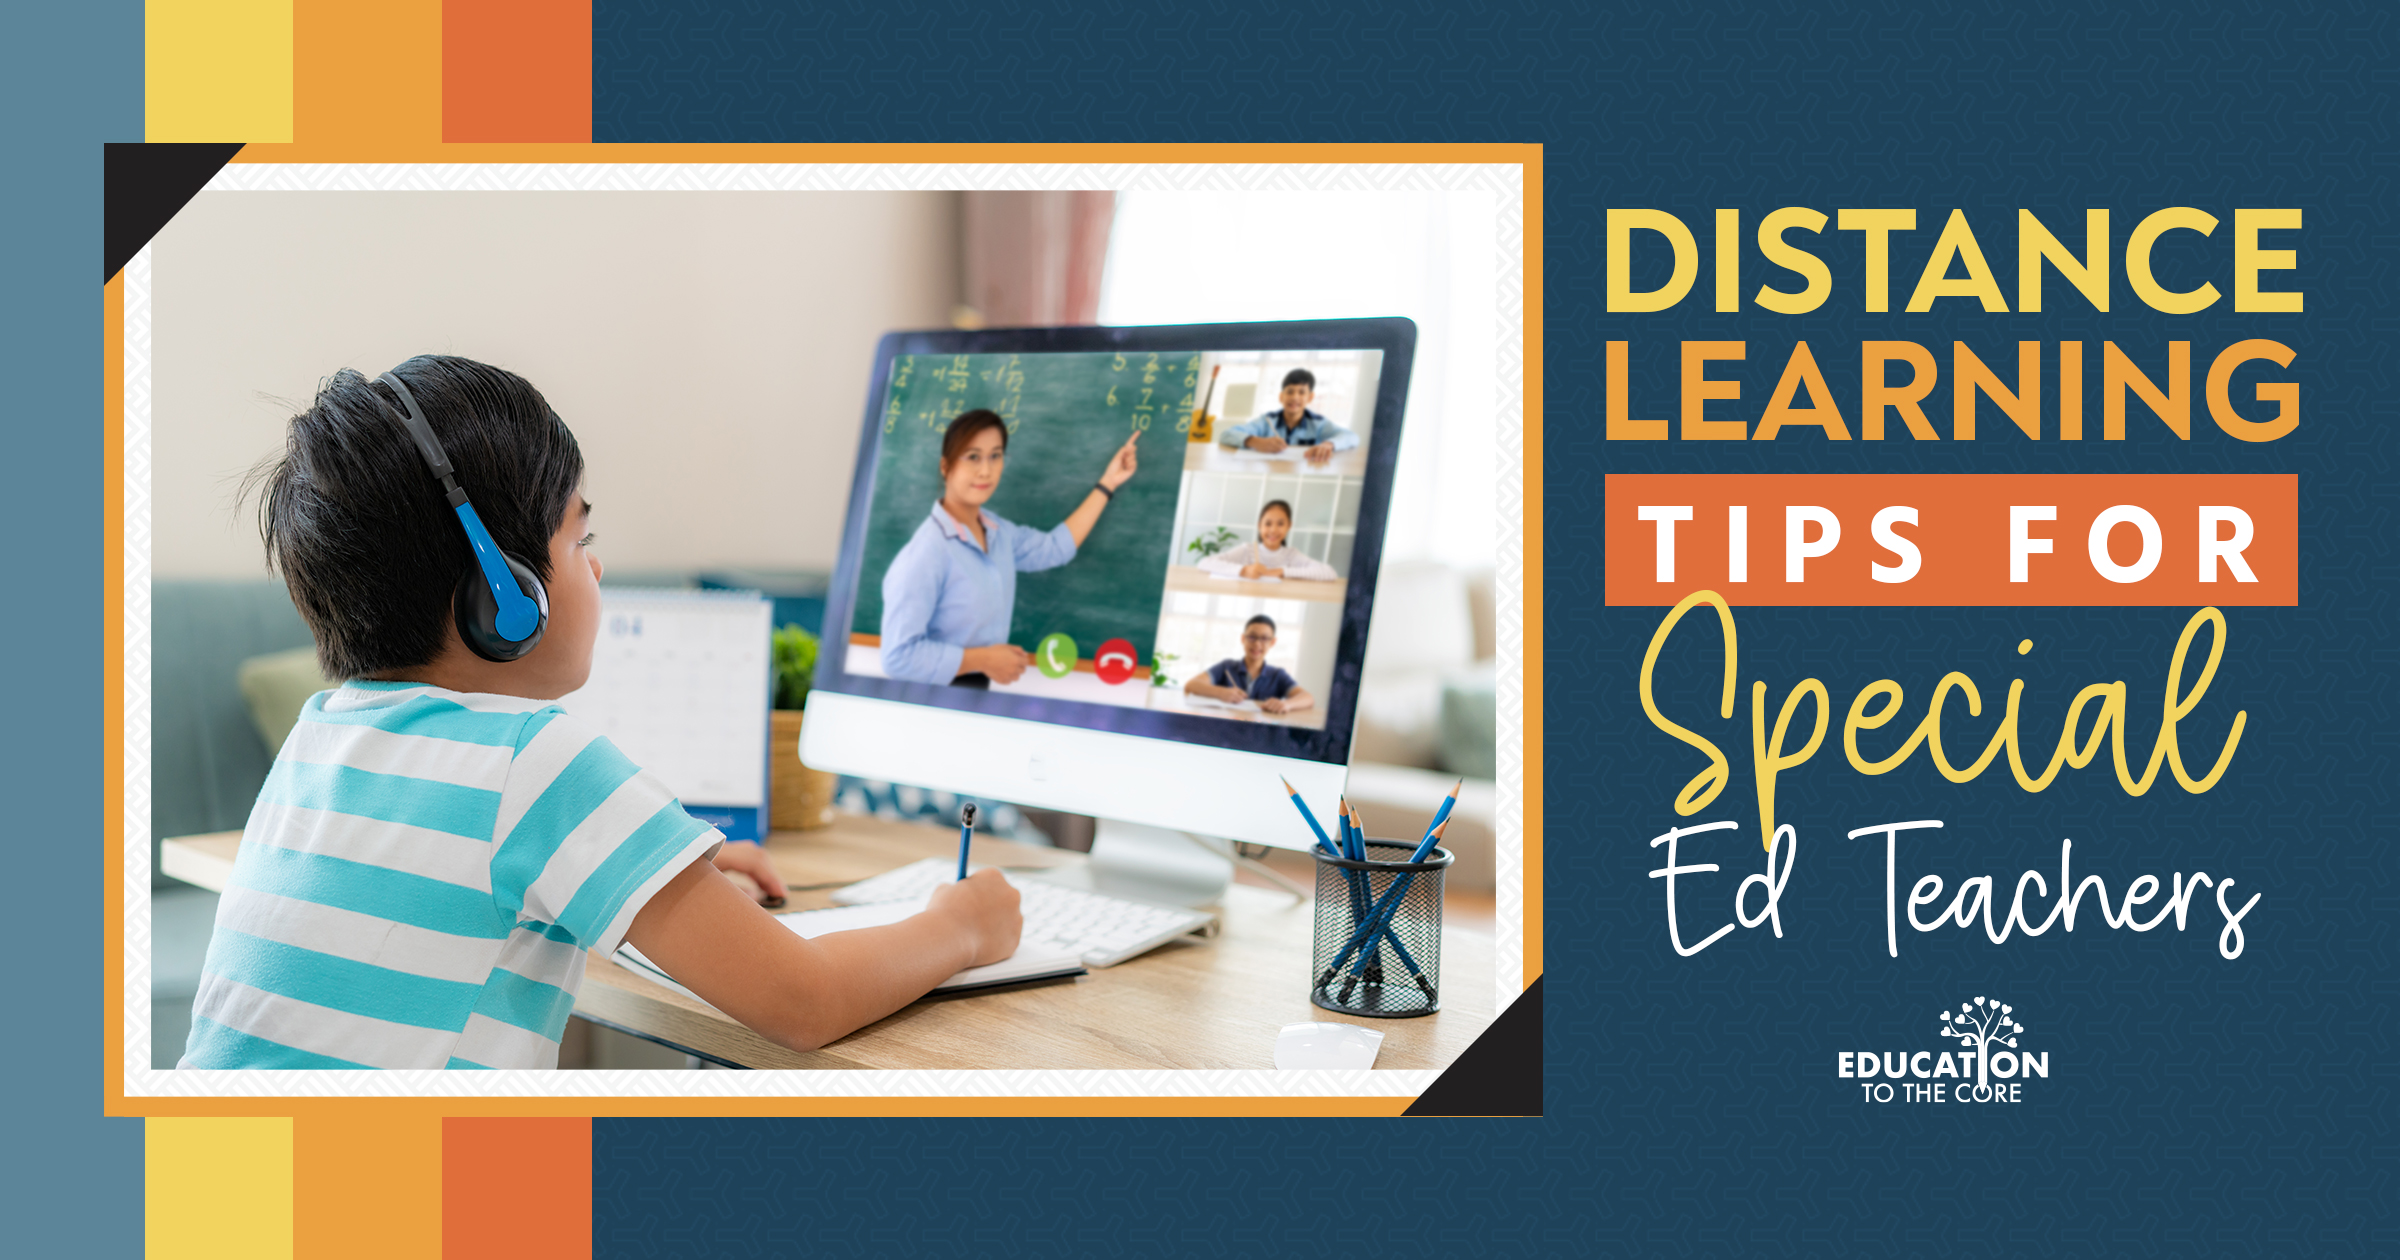 Distance Learning Tips for Special Ed Teachers